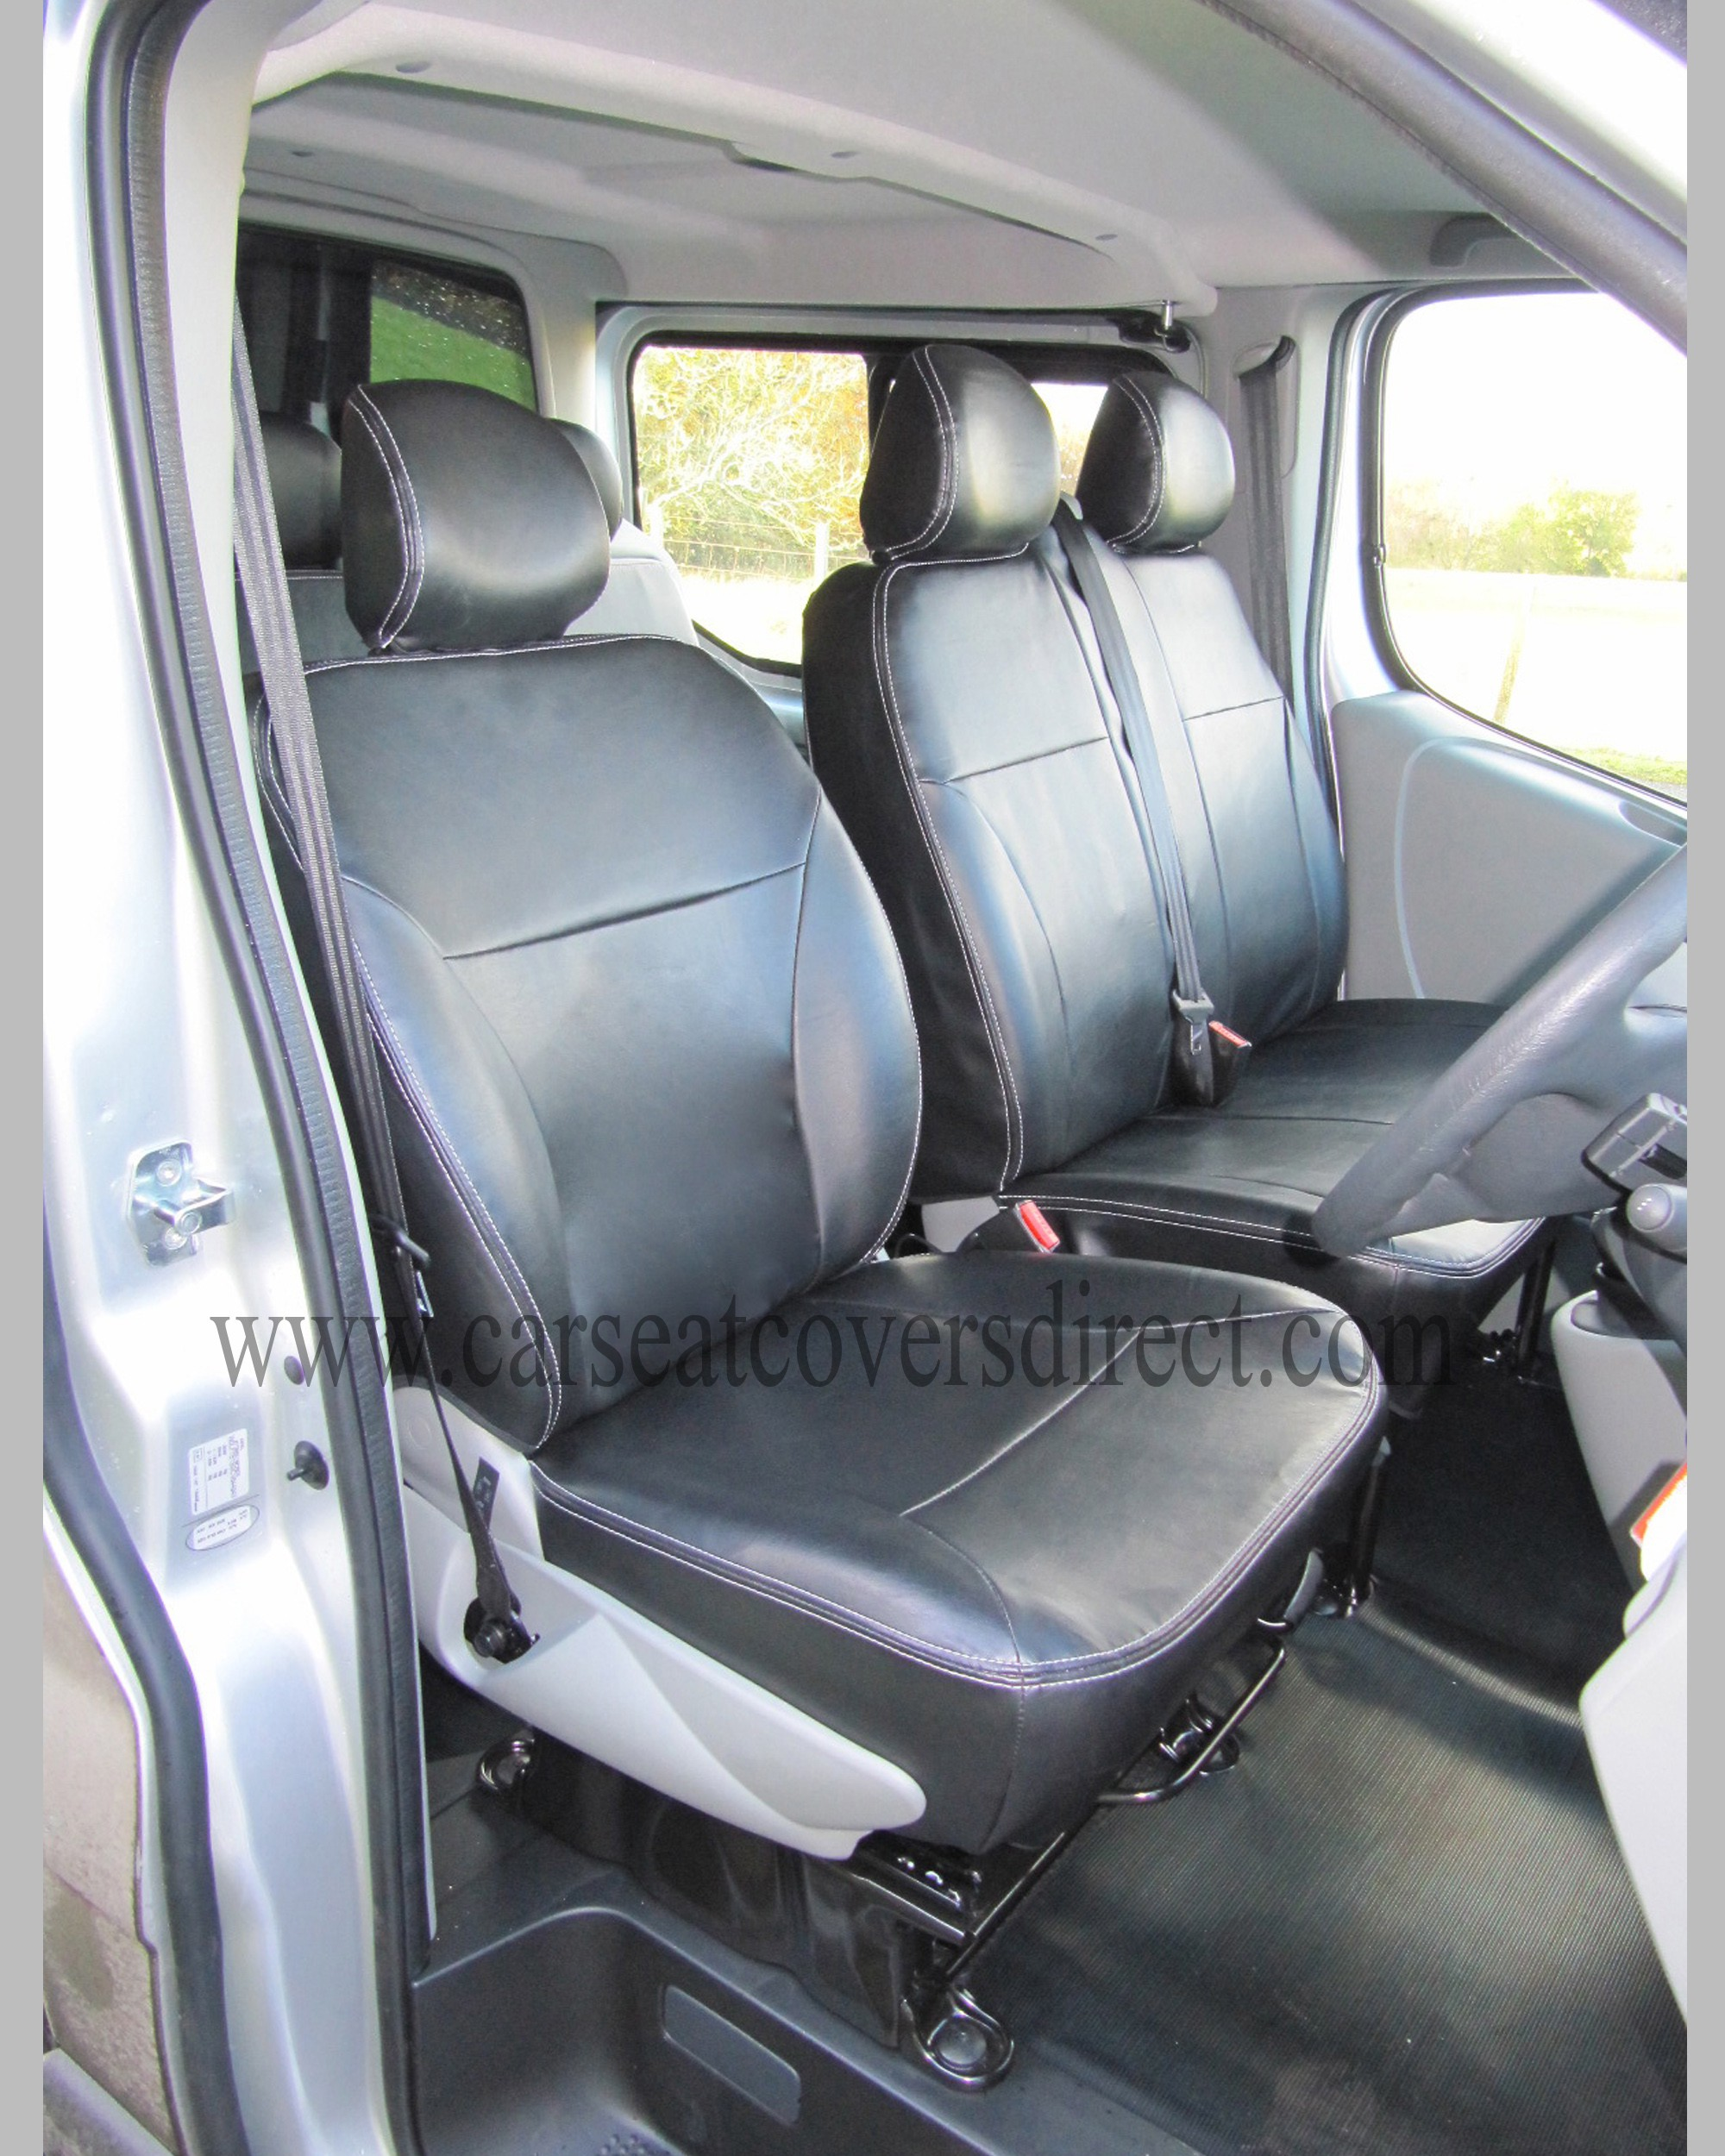 NISSAN PRIMASTAR Seat Covers Car Seat Covers Direct